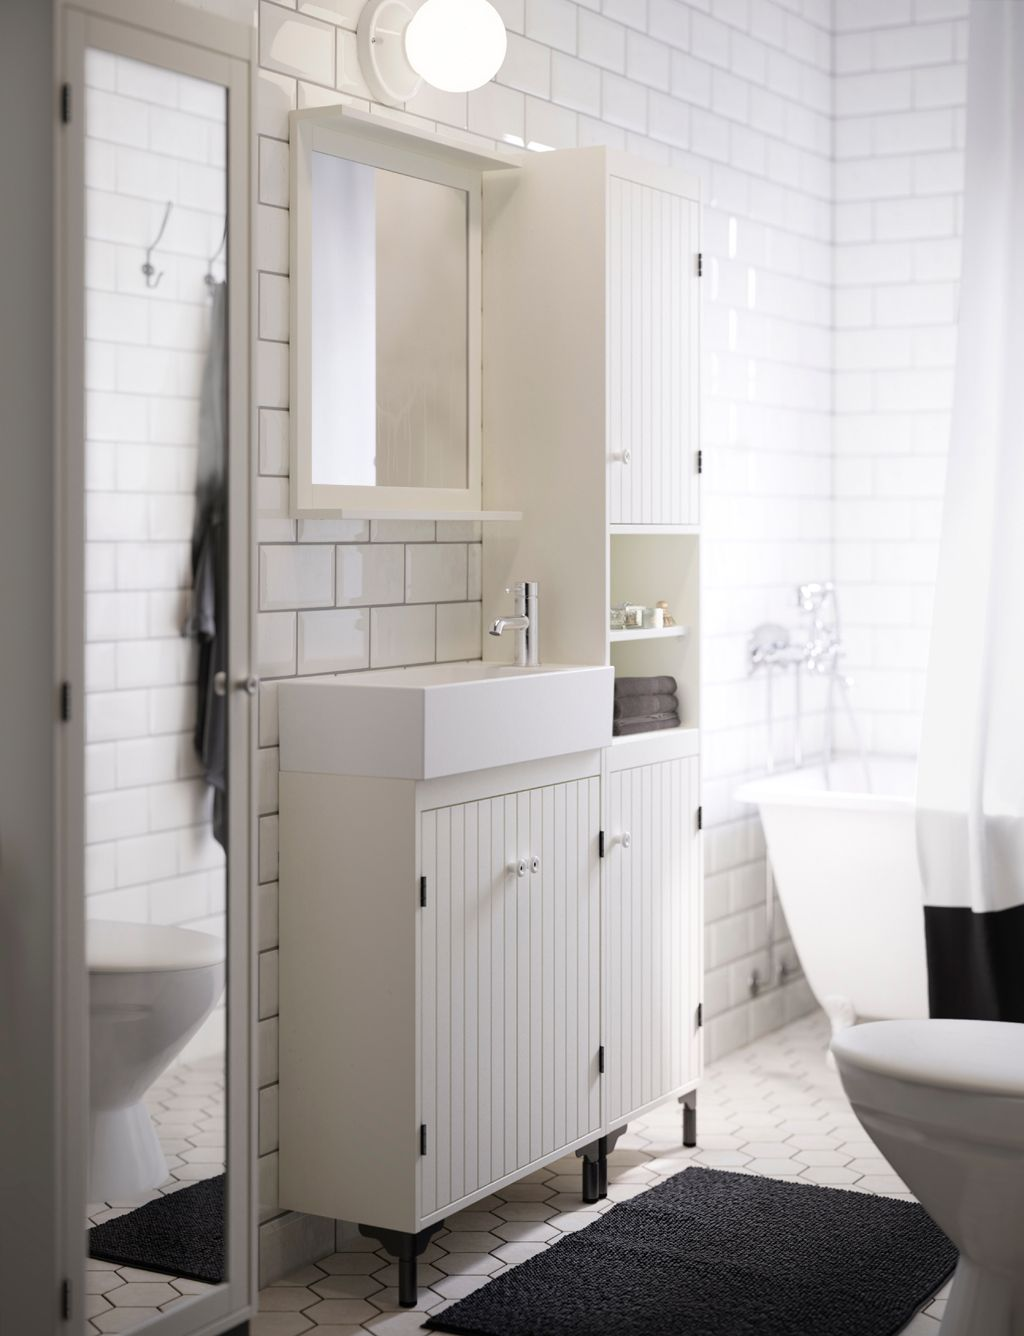 Slim Spacious And Super Stylish Narrow Bathroom Vanities Small Bathroom Narrow Bathroom